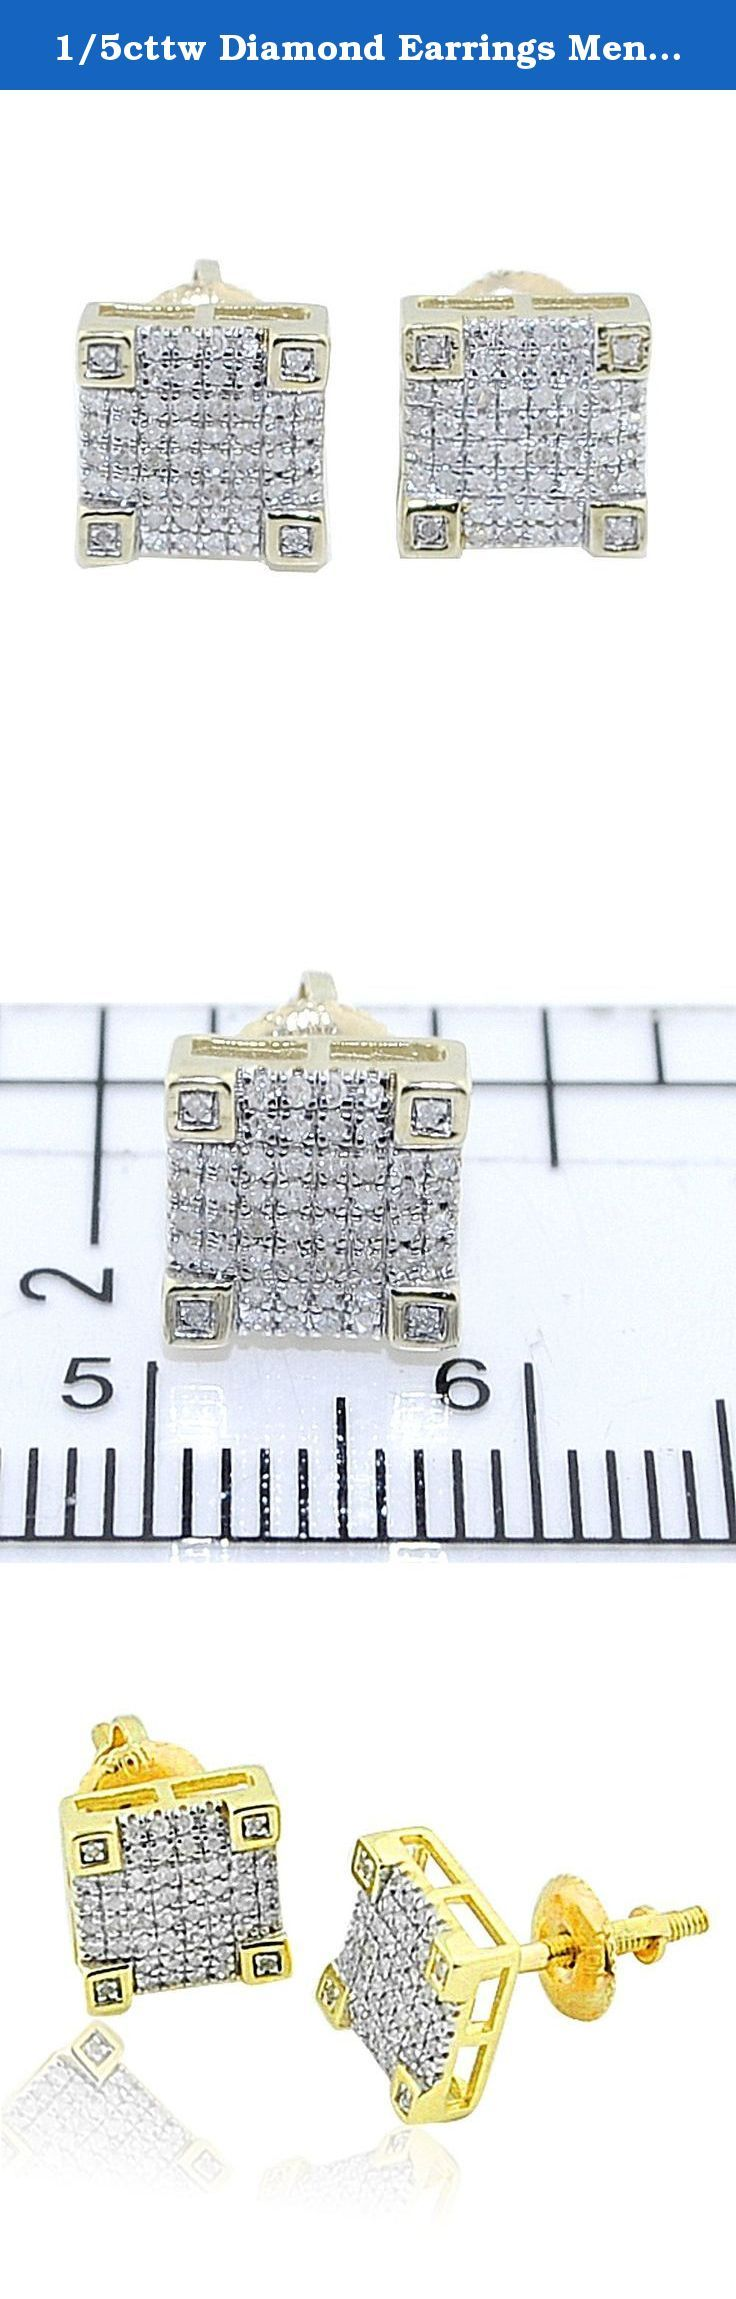 1/5cttw Diamond Earrings Mens 10K Gold 9mm Wide Fashion Earrings Screw Back. 1/5cttw Diamond Earrings Mens 10K Gold 9mm Wide Fashion Earrings Screw Back Item Type: Stud-earrings Metal Type: 10k Yellow-gold Gem Type: White-diamond Carat Weight: 0.21CARATS Real Diamond Earrings with real 10k Yellow-gold for mens with Screw Back Earring box included, ships within 24 hours signature required on delivery Color diamonds are irradiated to produce color, all measurements are approximate values...